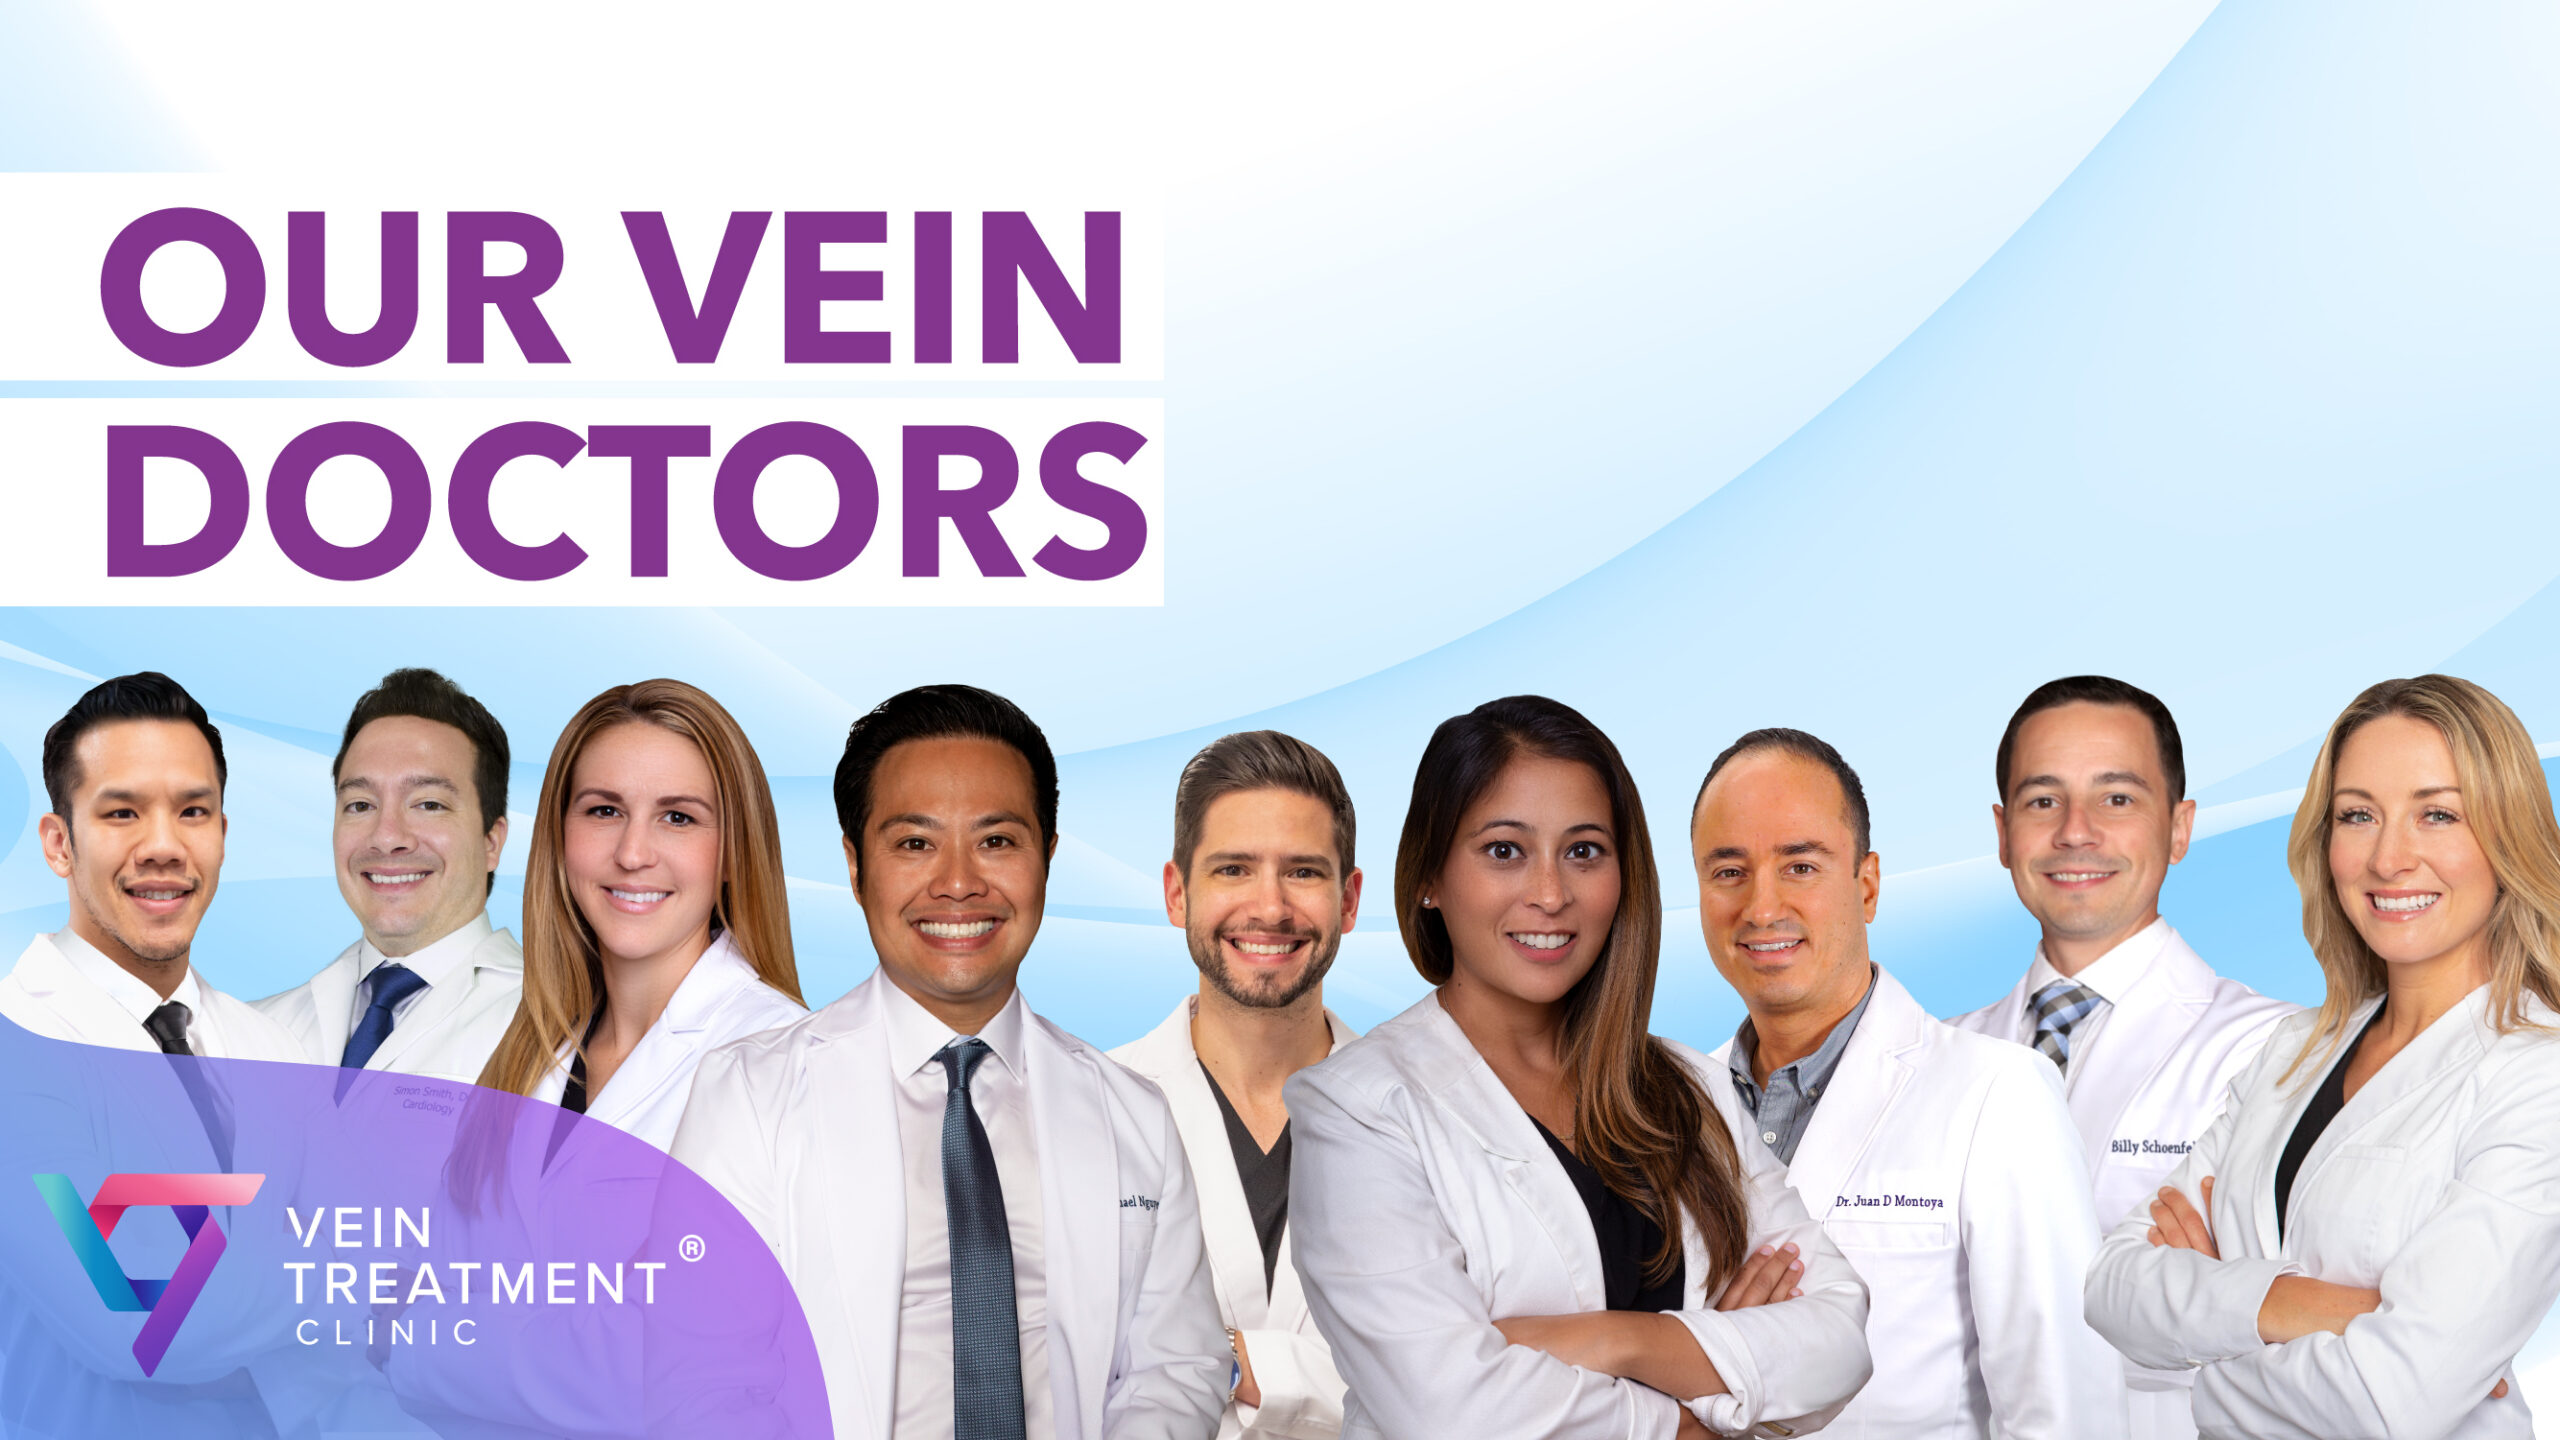 Vein Doctors in New York, Long Island, New Jersey, California and Texas